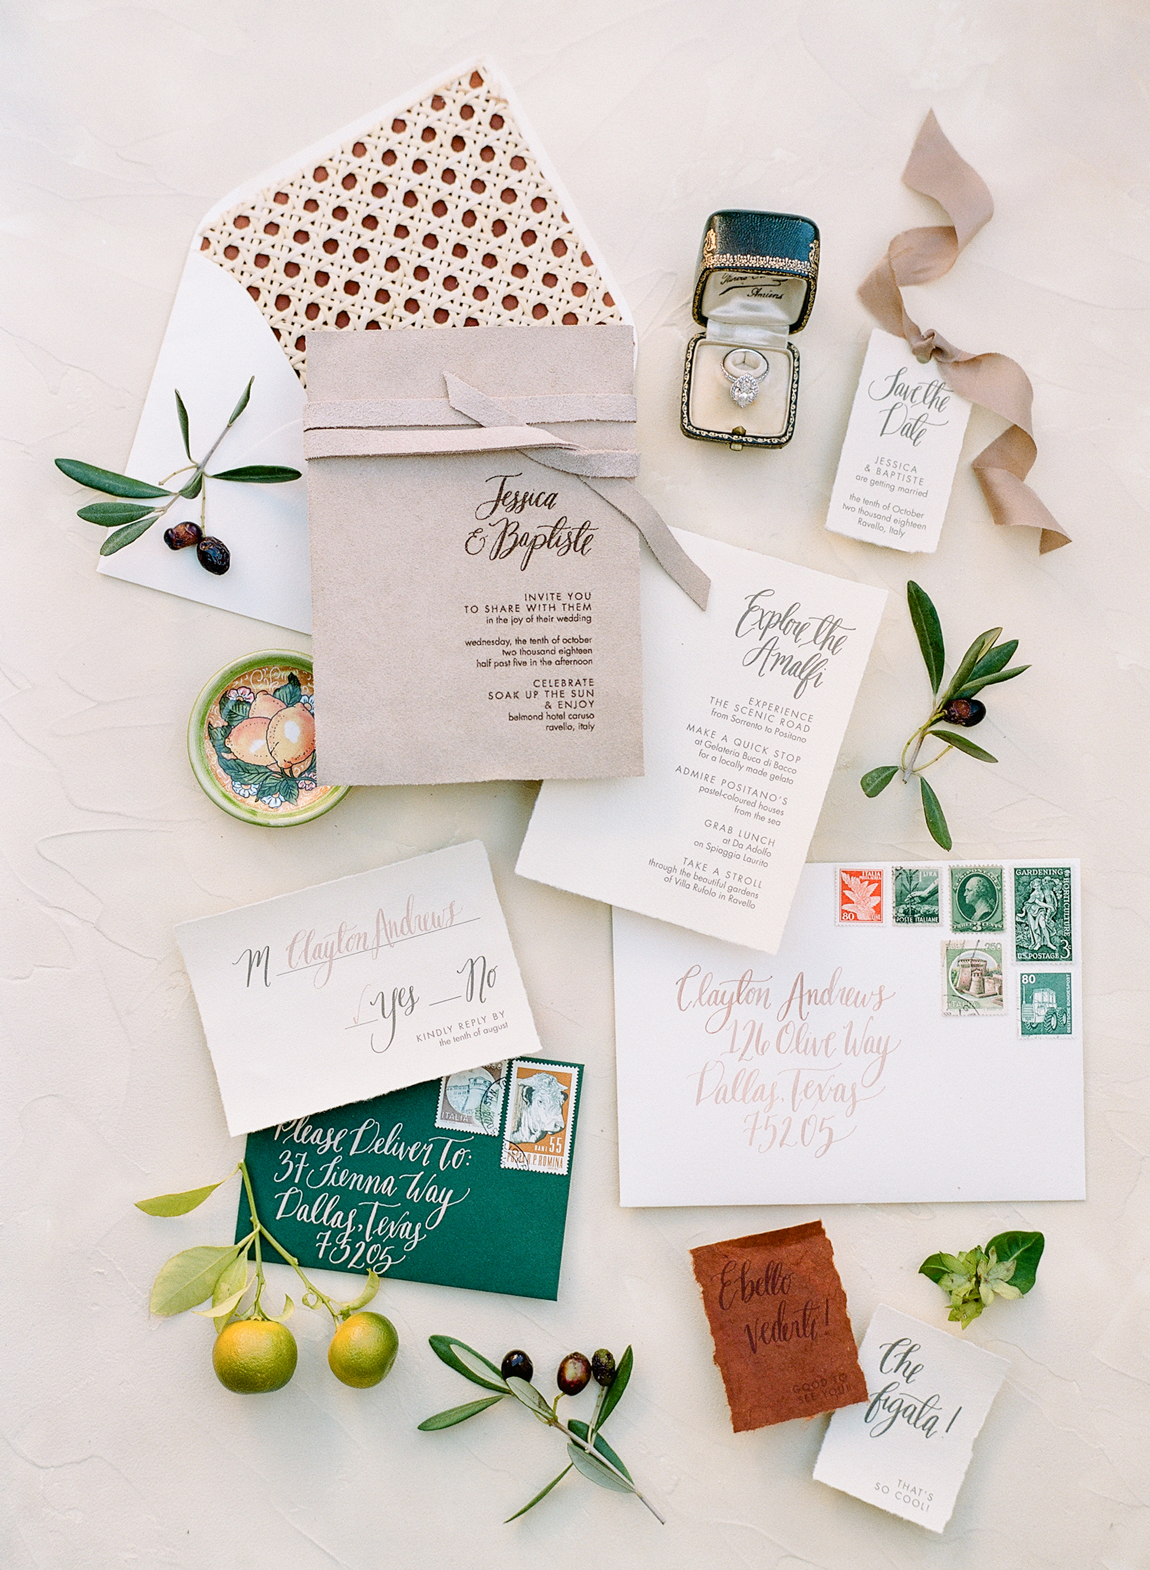 How Does the New Price of Postage Impact the Cost of Mailing Wedding Invitations?